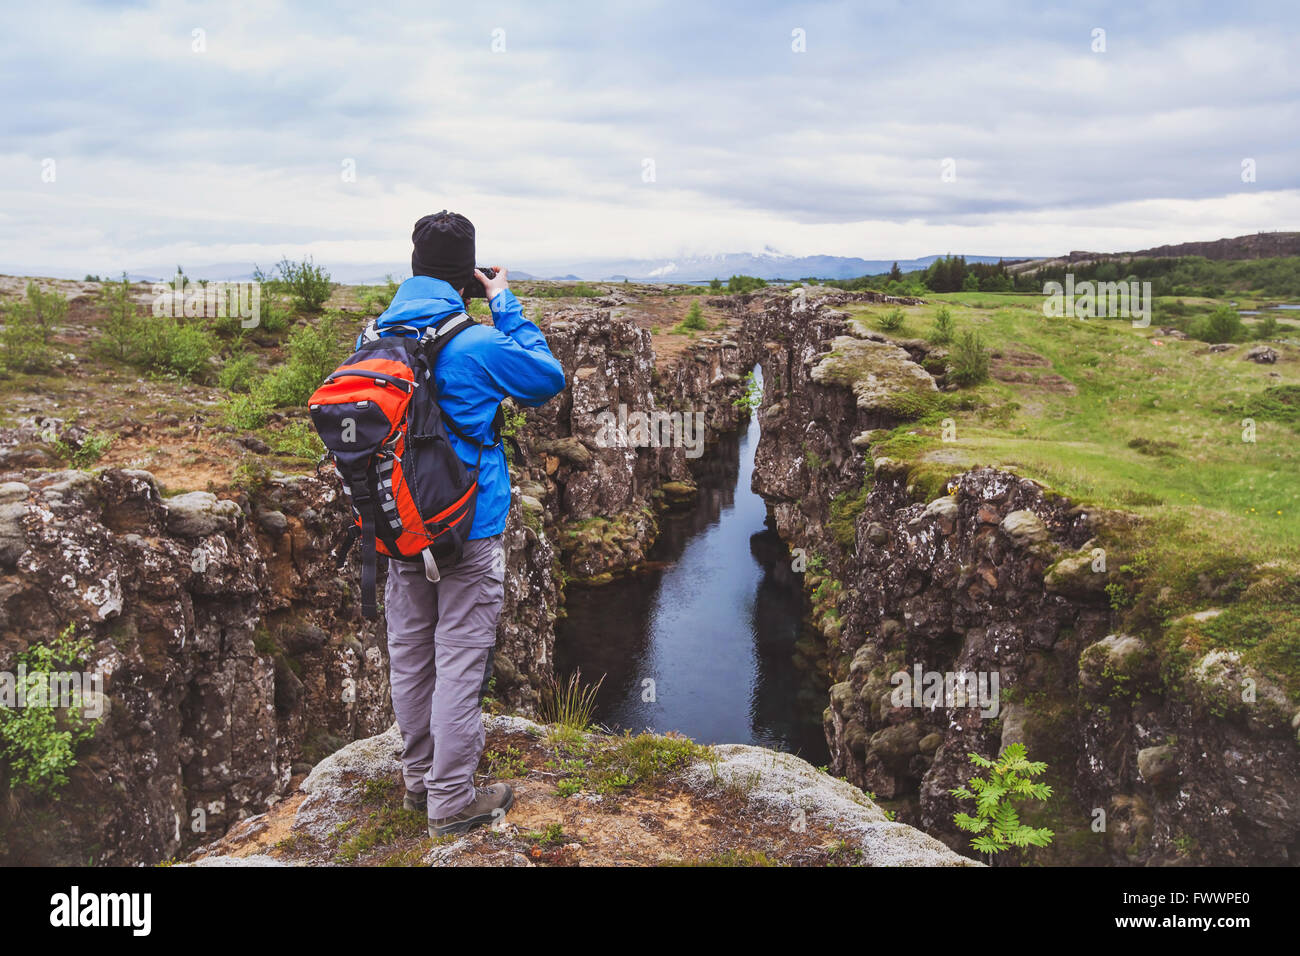 nature photographer, hiker with backpack taking photo of beautiful landscape in Iceland national park Thingvellir - Stock Image